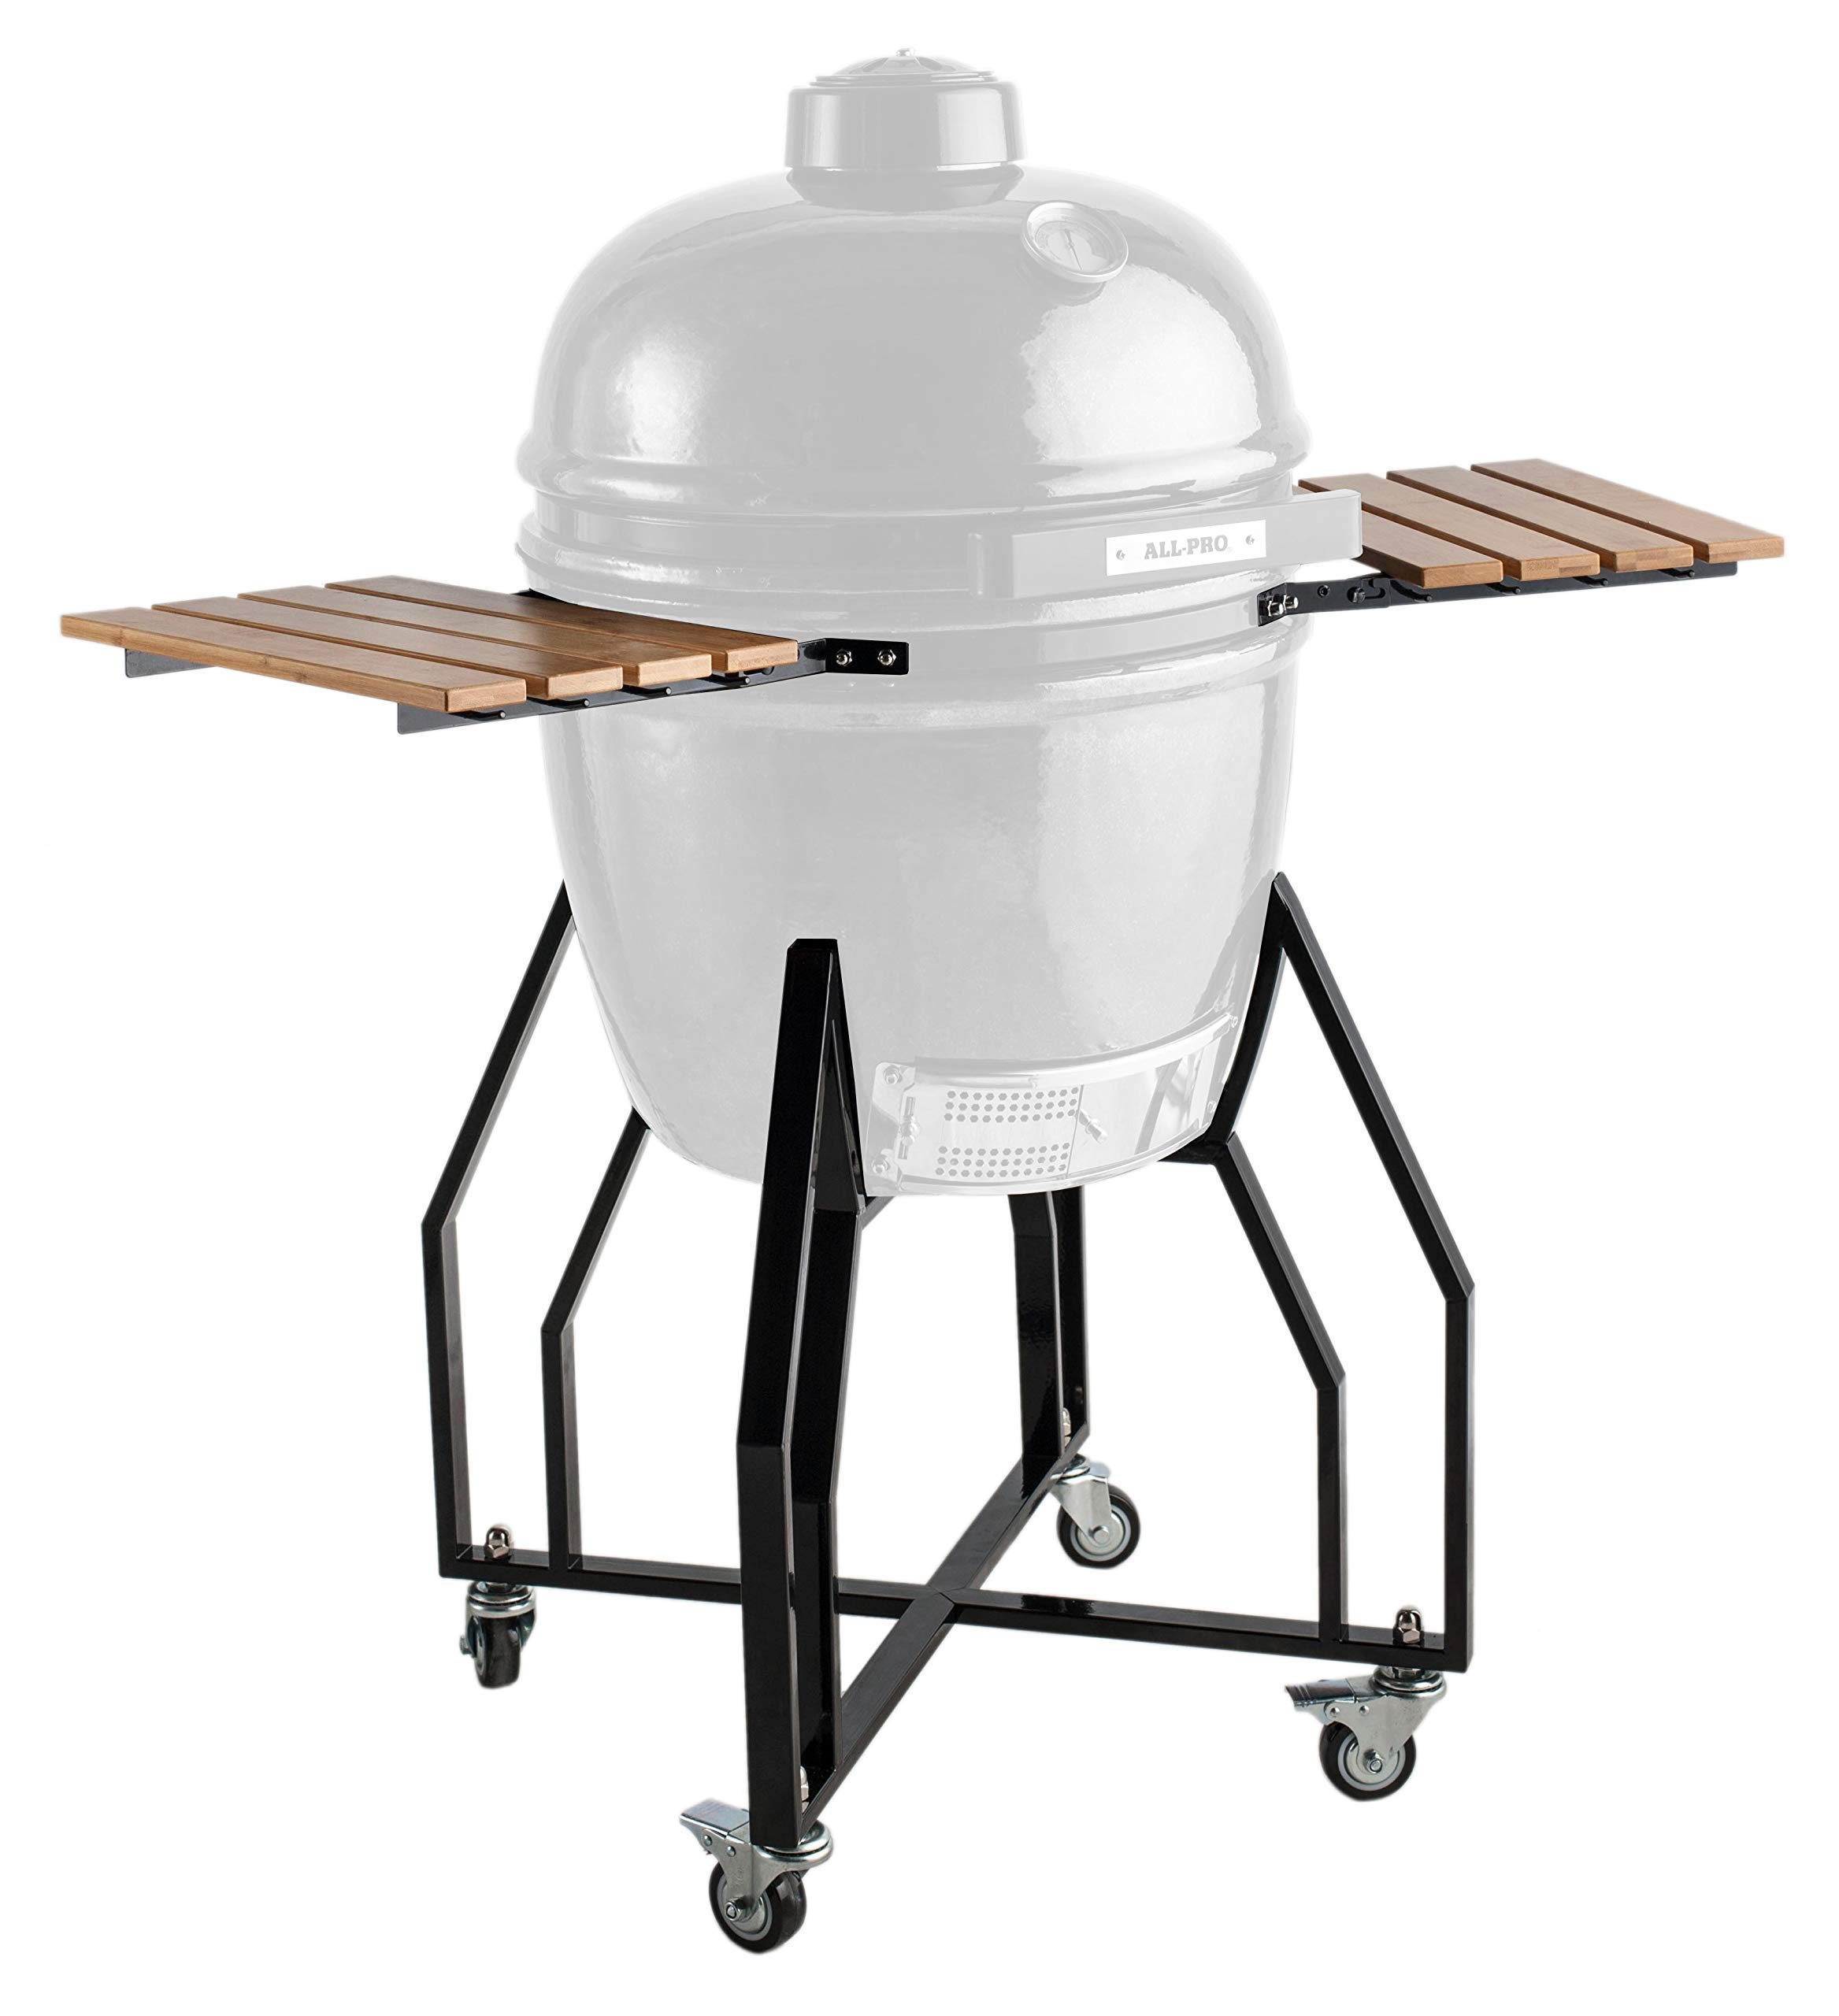 All Pro All KGA1920b Cart with Side Shelves and Black Powder Coated Trim-Fits 19'' Grill (Renewed) by All Pro